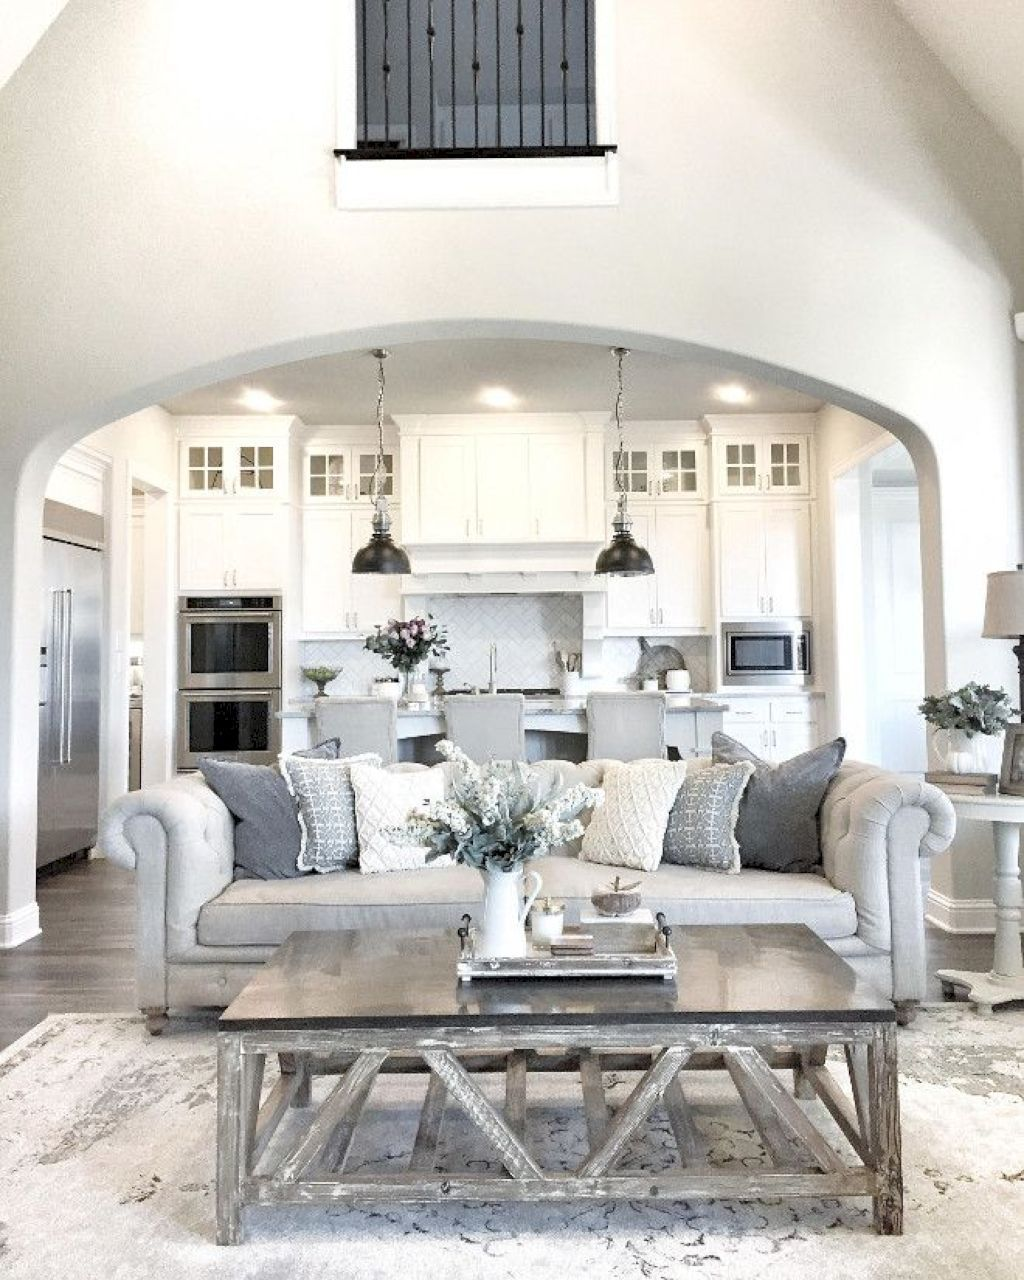 Adorable 27 Modern Farmhouse Living Room Decor and Design